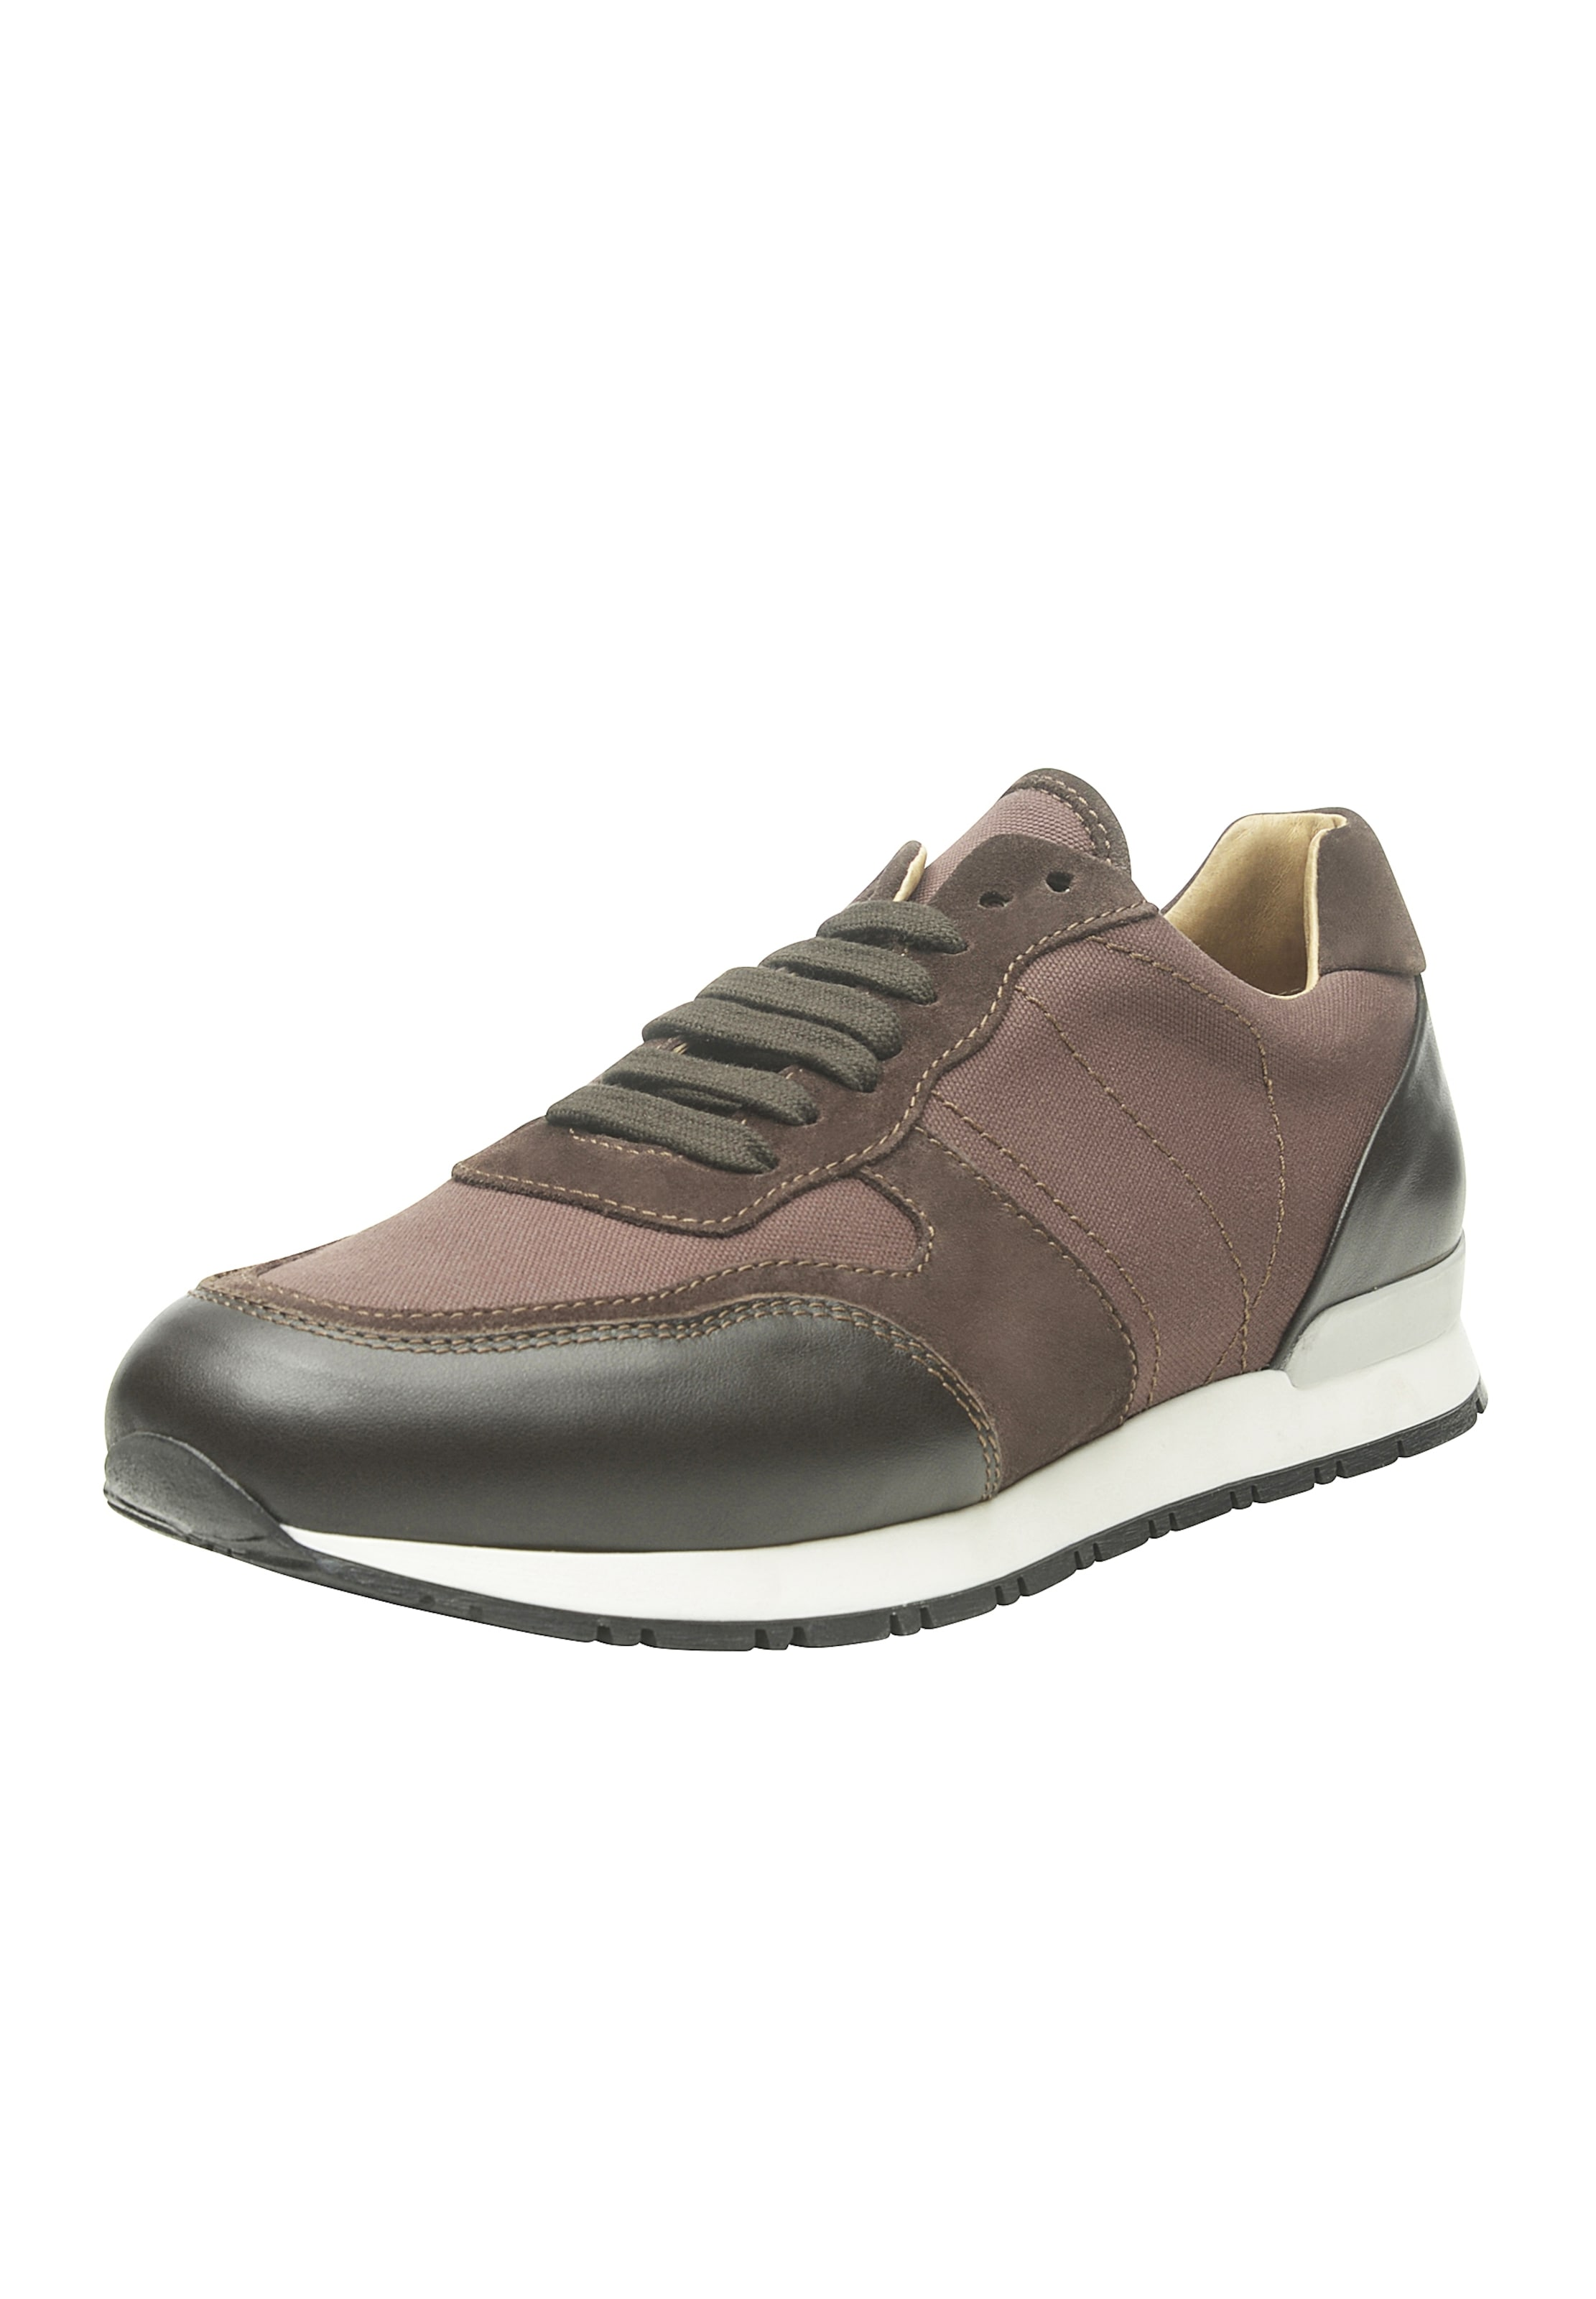 SHOEPASSION | Turnschuhe No. 11 MS